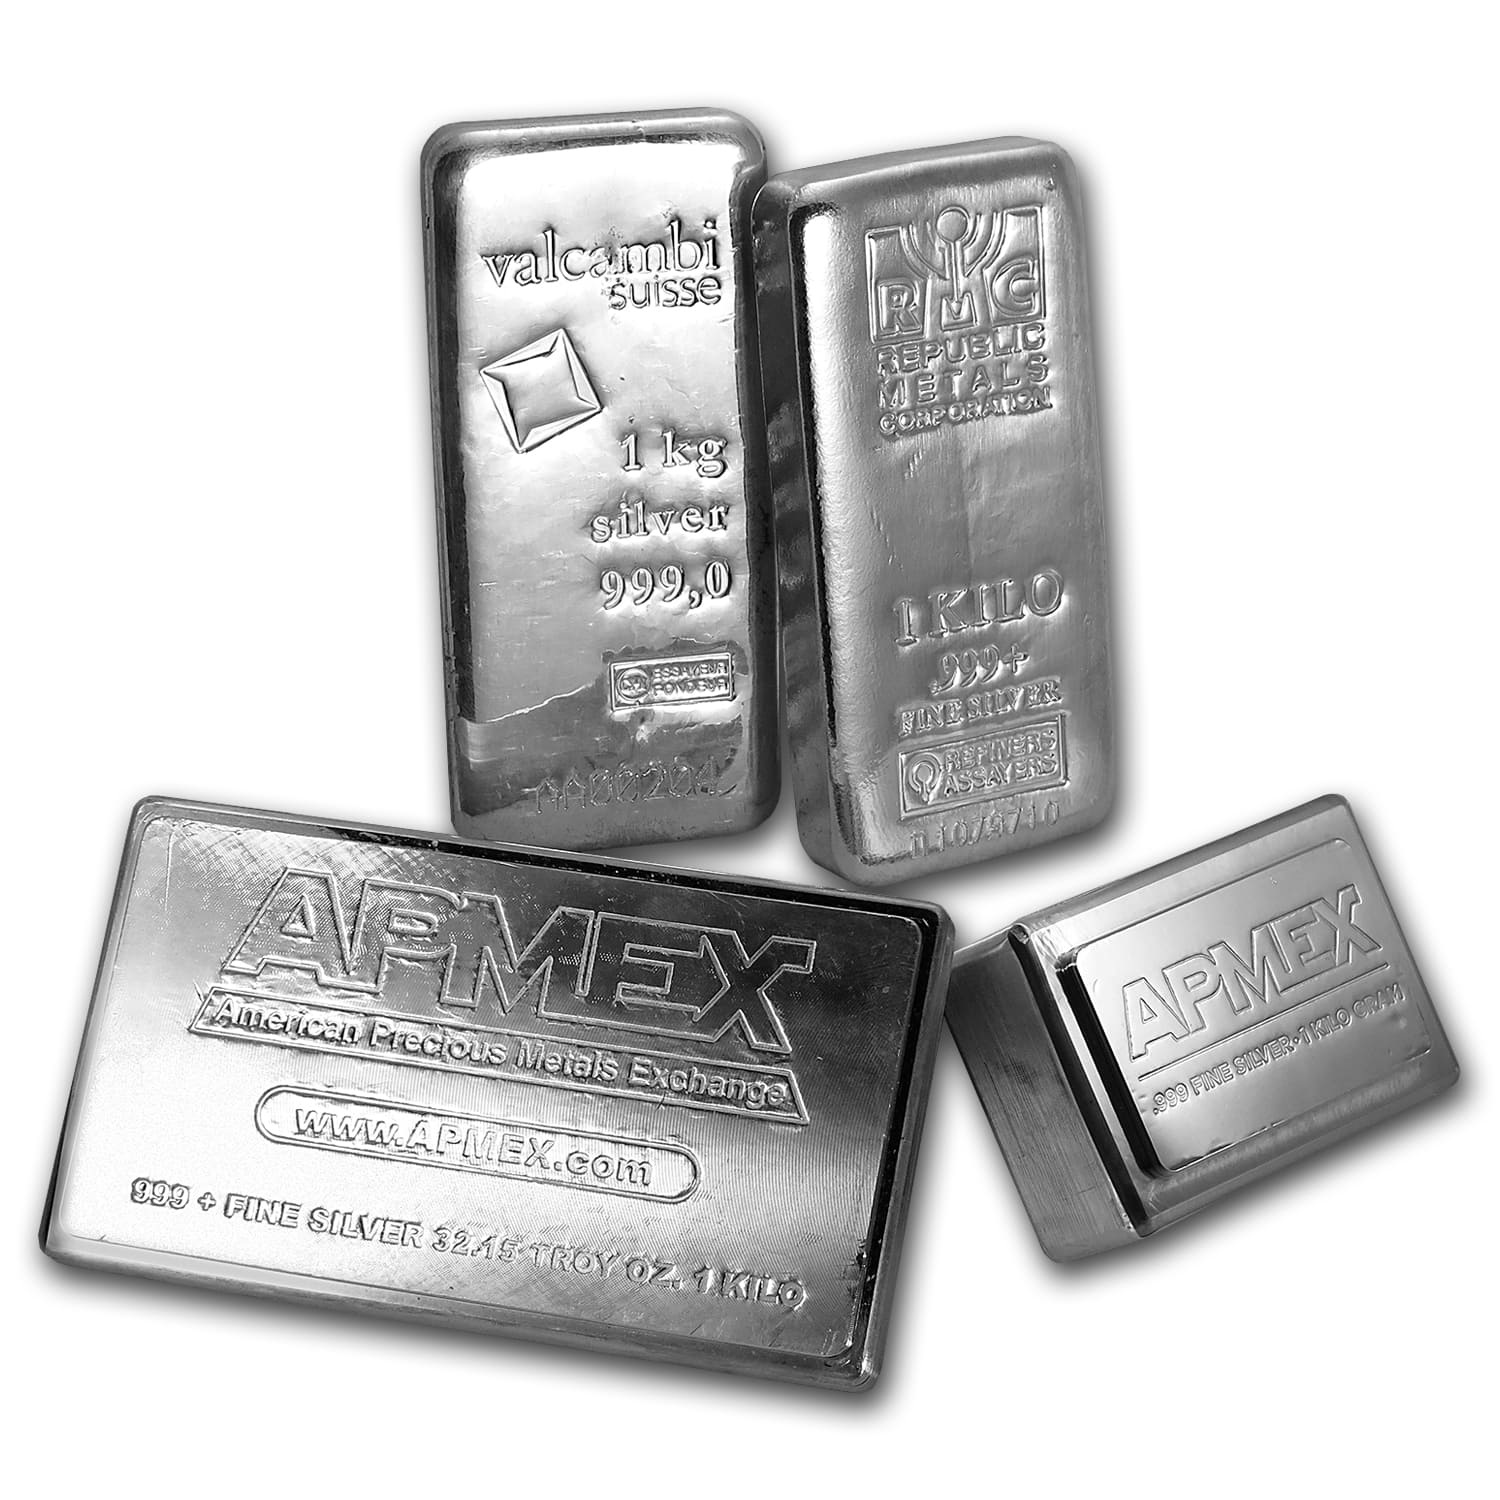 1 Kilo Silver Bars - Secondary Market